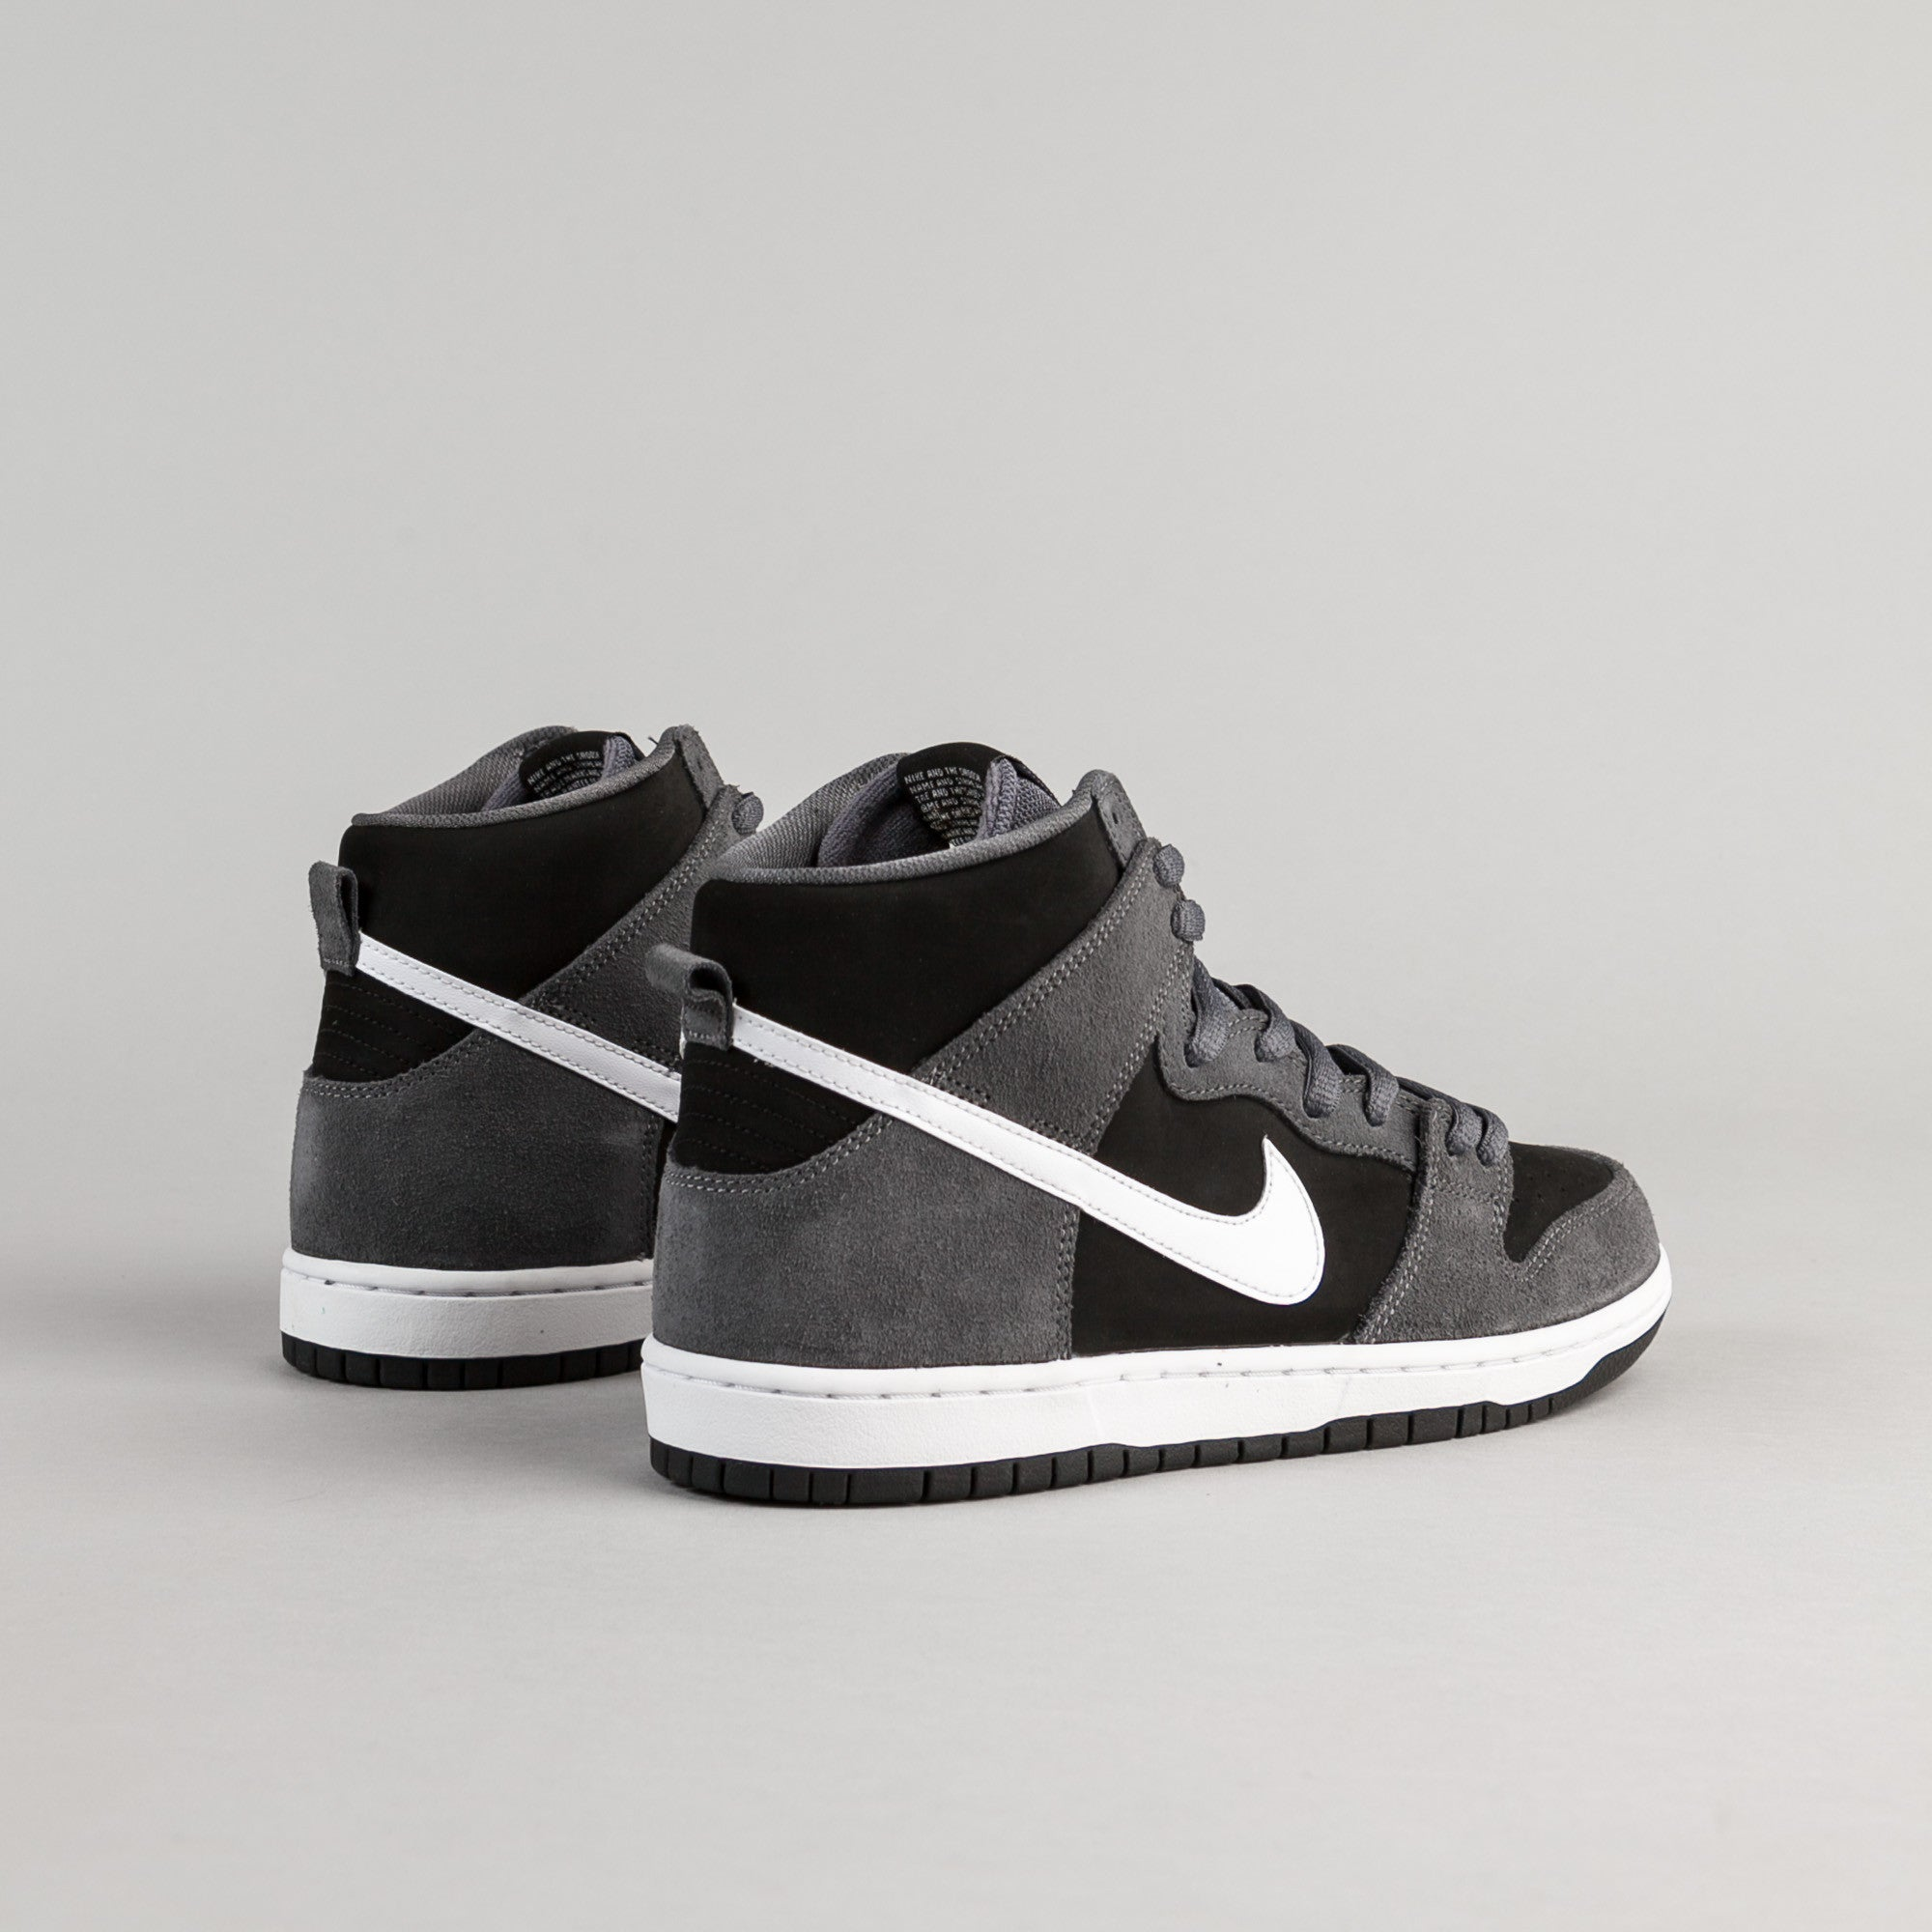 Nike SB Dunk High Pro Shoes - Dark Grey / White - Black - White